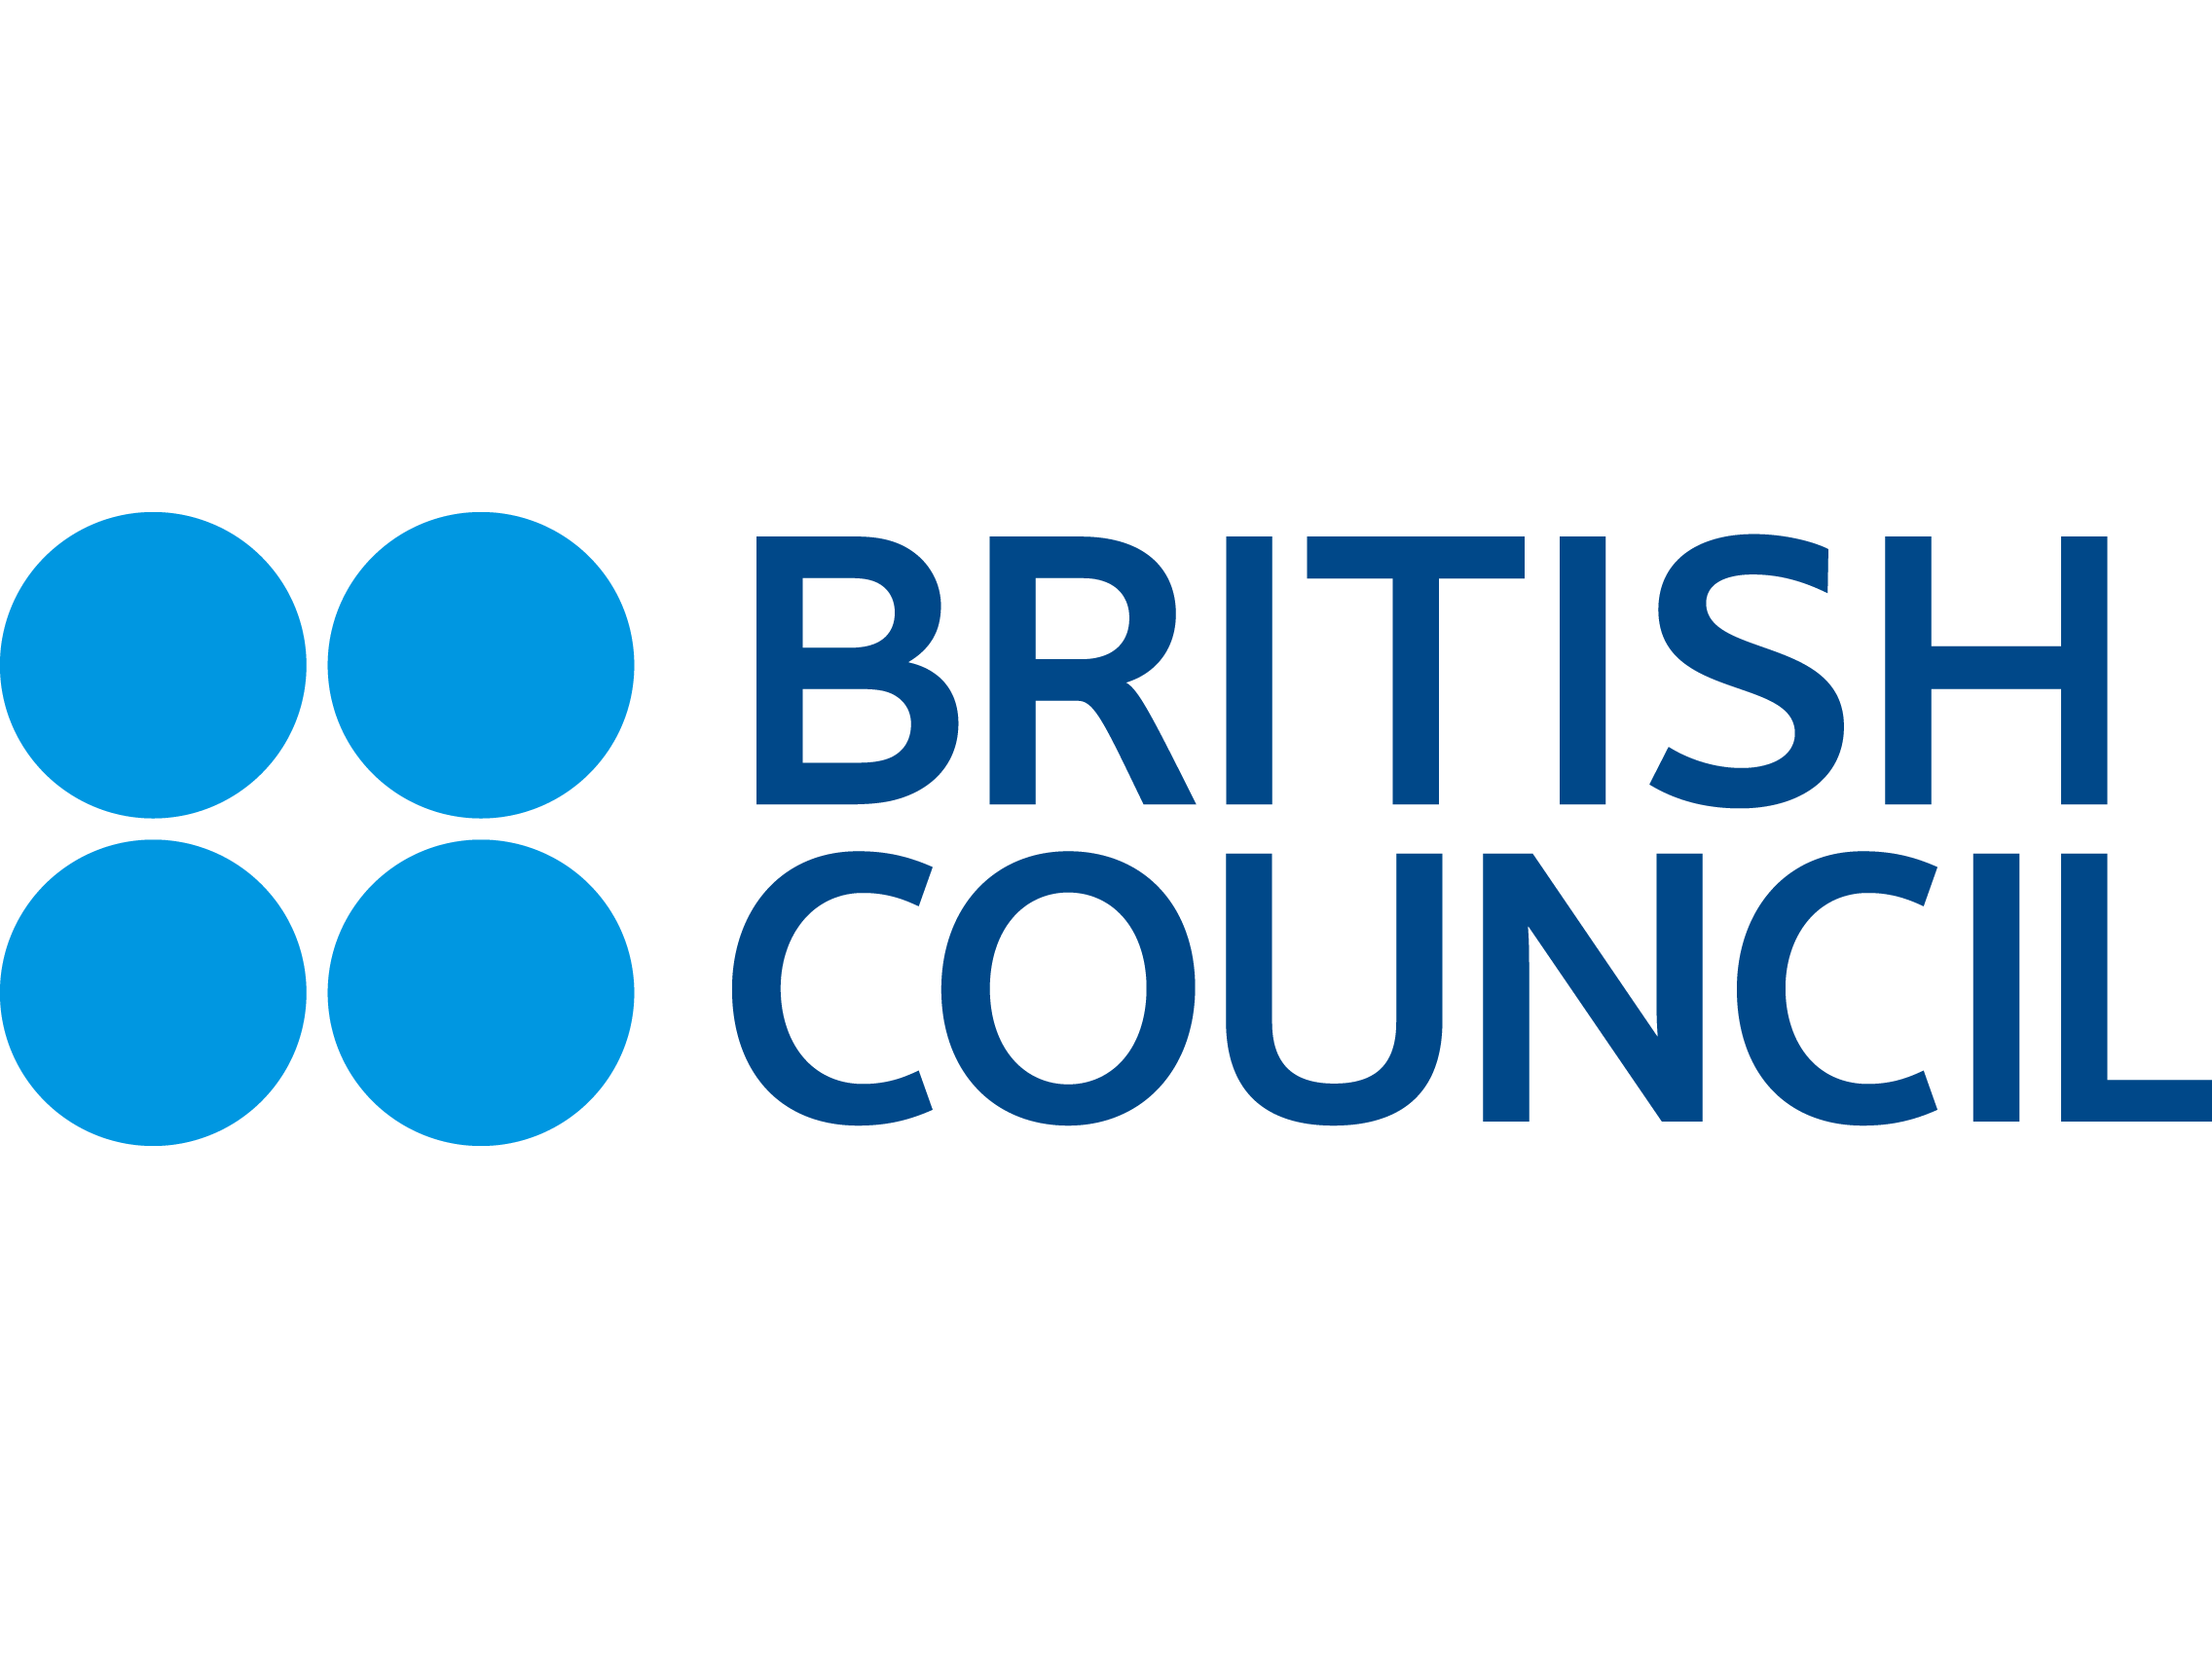 British Council - UAE